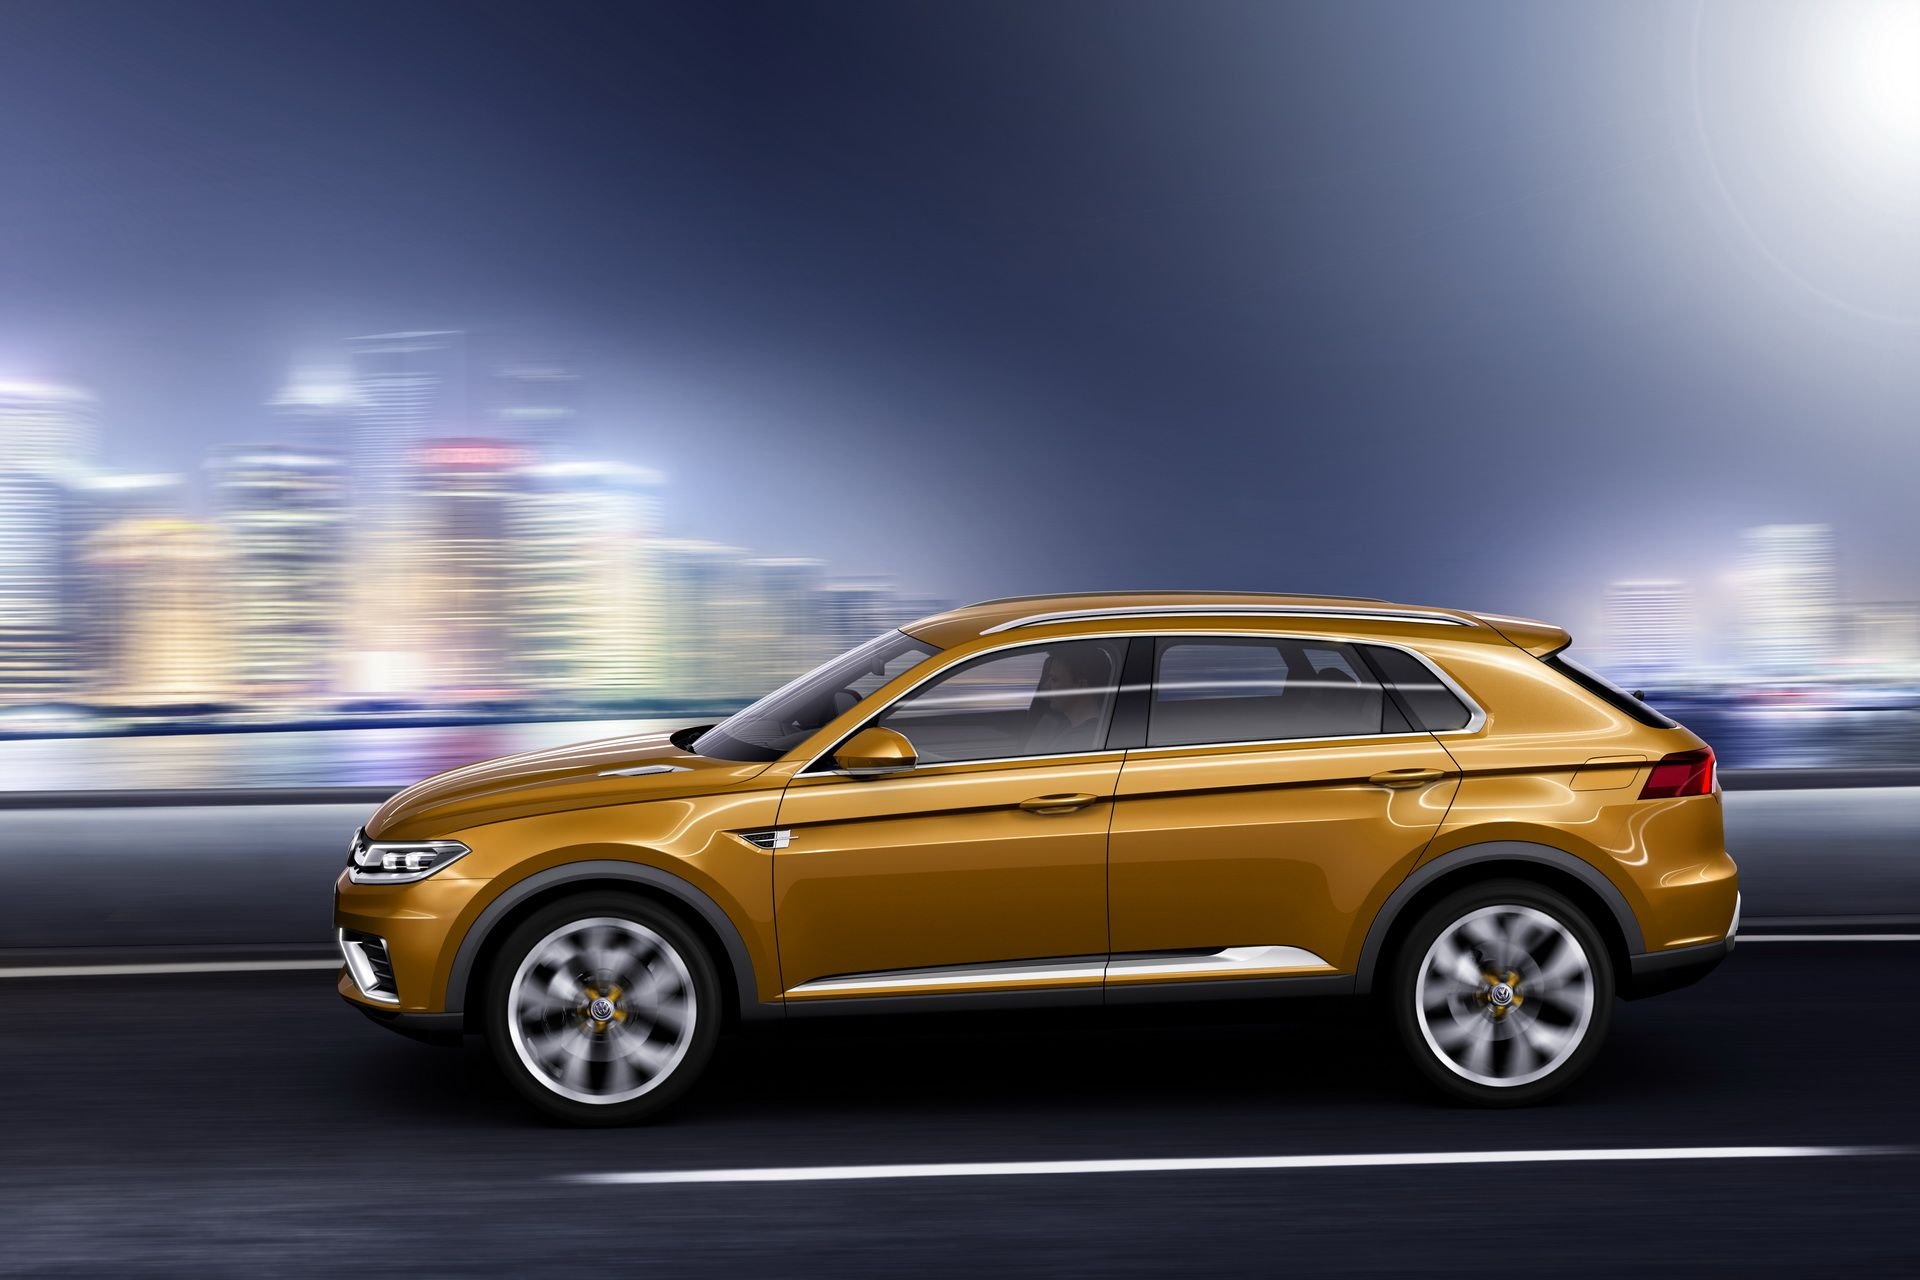 vw-crossblue-coupe-concept-10.jpg